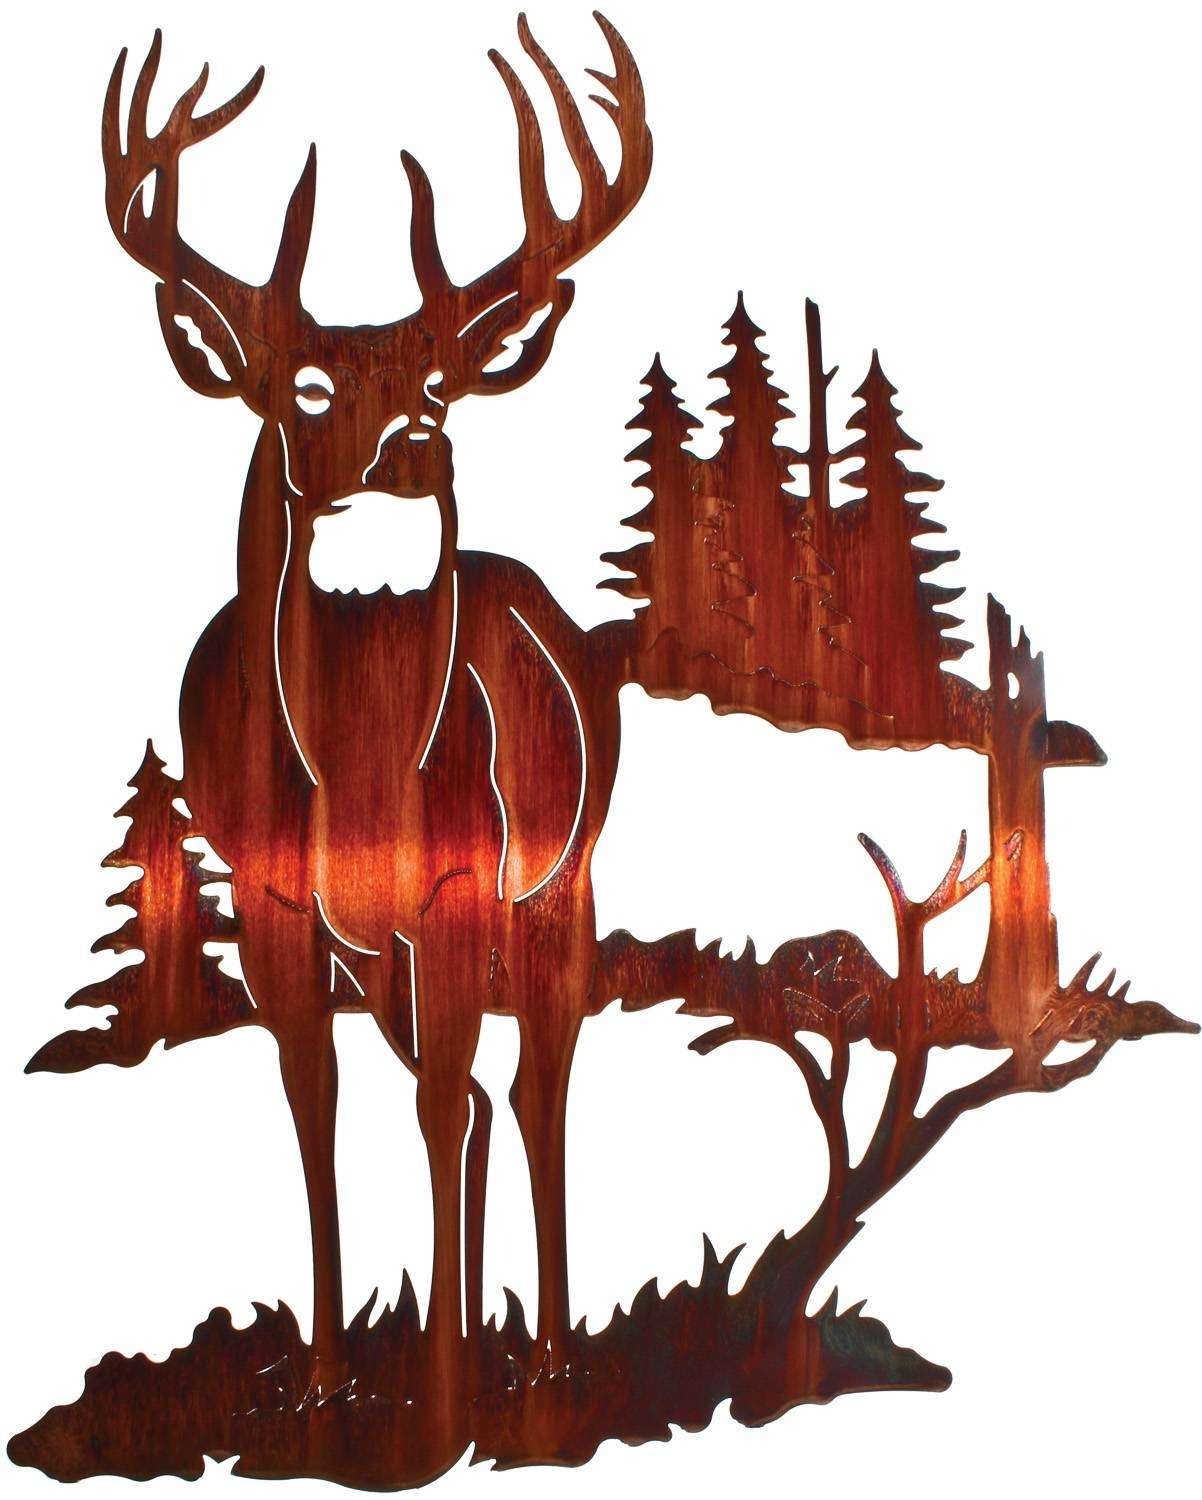 Deer Wall Art, Deer Wall Hangings, Metal Wall Sculptures Inside 2018 Deer Metal Wall Art (View 6 of 20)